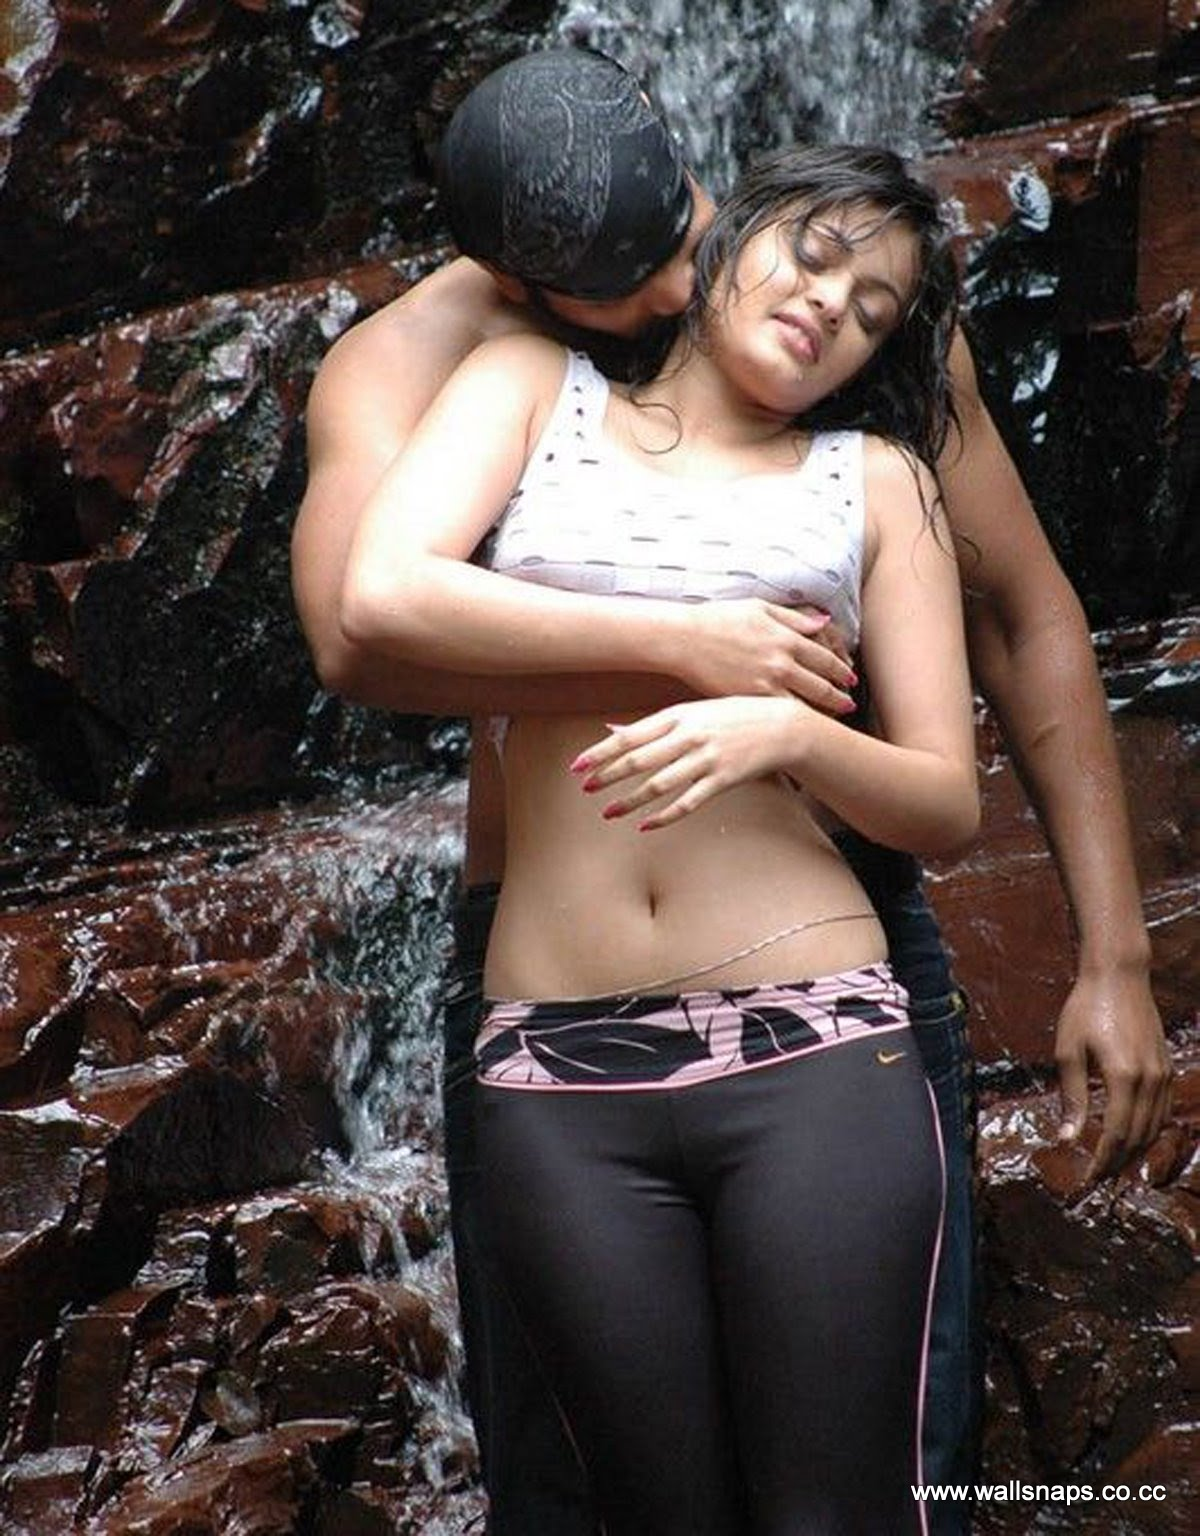 Hot indian actresses kajal agarwal showing their juicy butts and ass show fap challenge 1 - 3 6